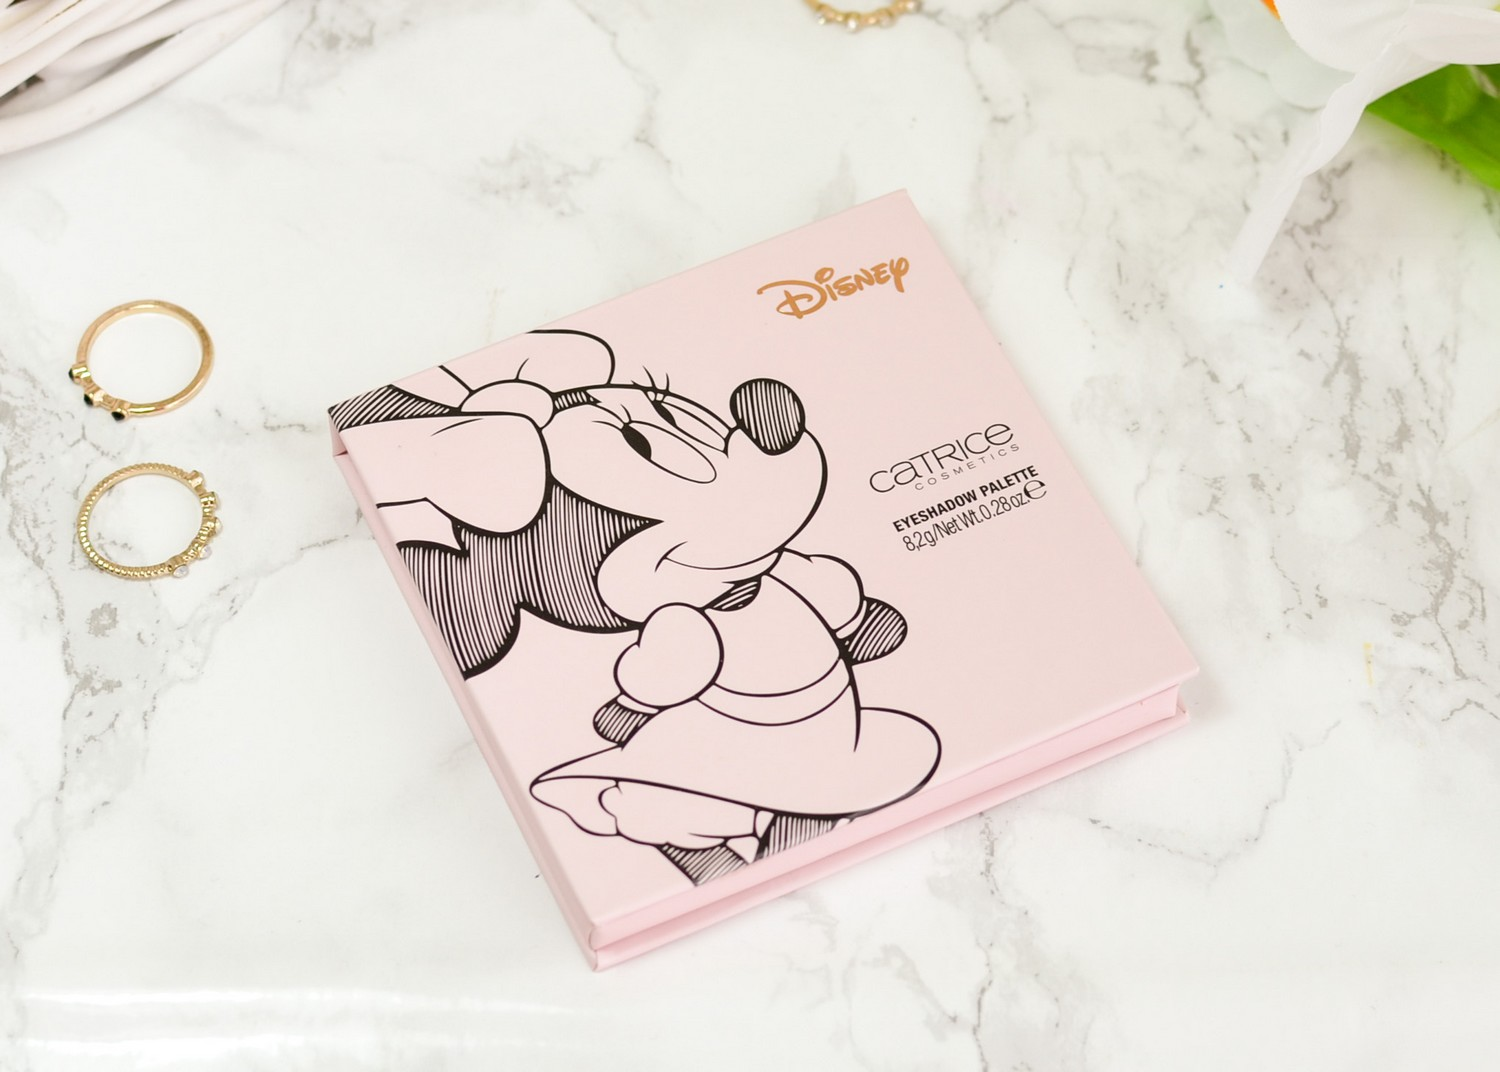 Catrice x Disney Minnie and Daisy LE Eyeshadow Palettes